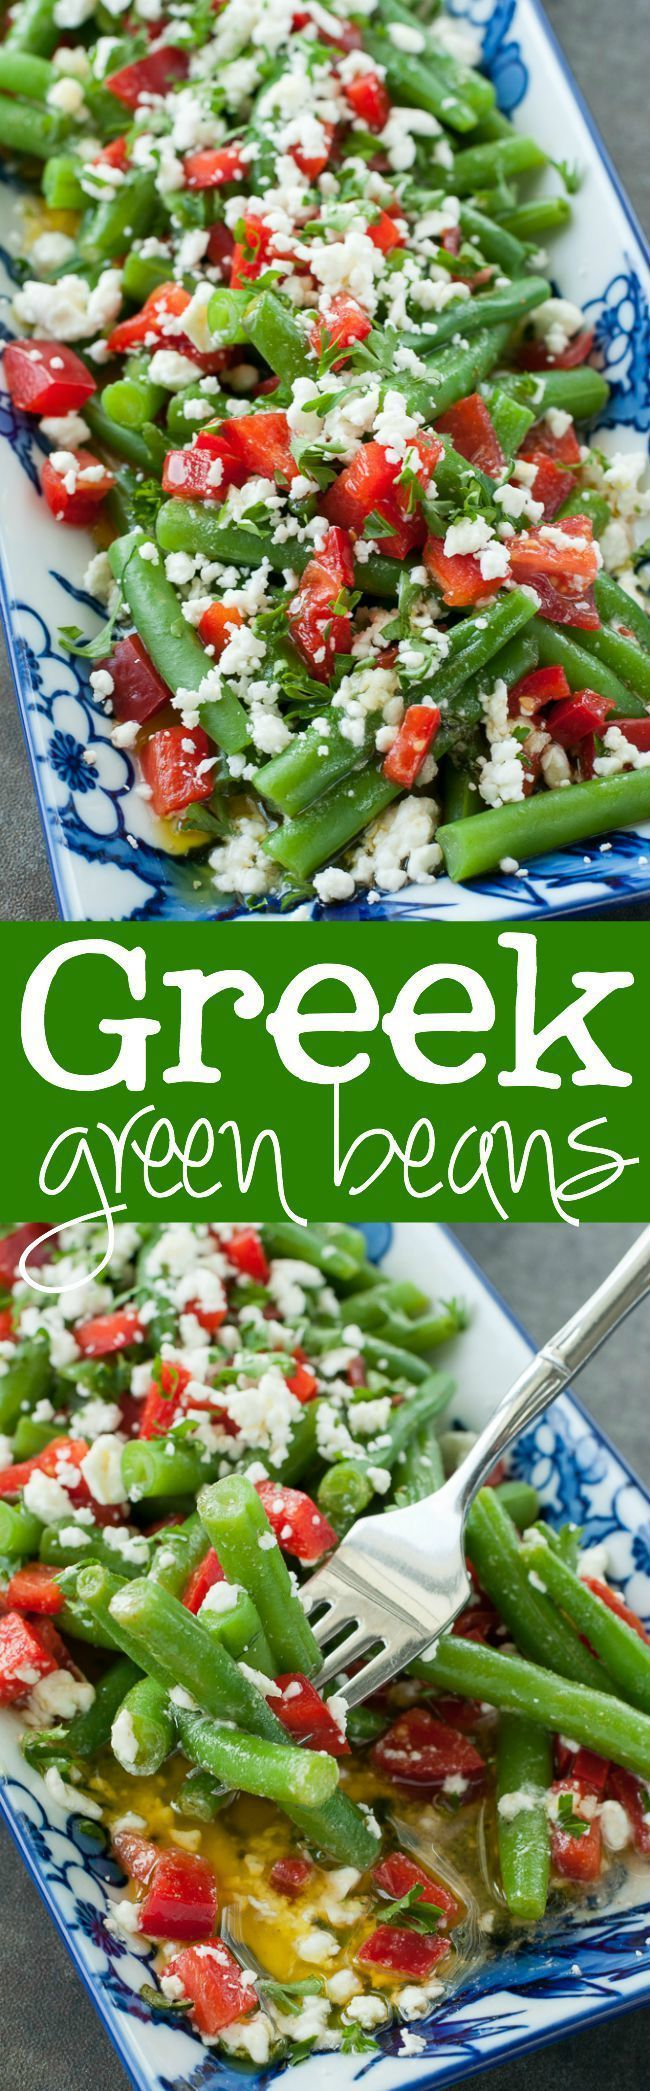 17 best ideas about greek side dishes on pinterest easy for Best green vegetable recipes